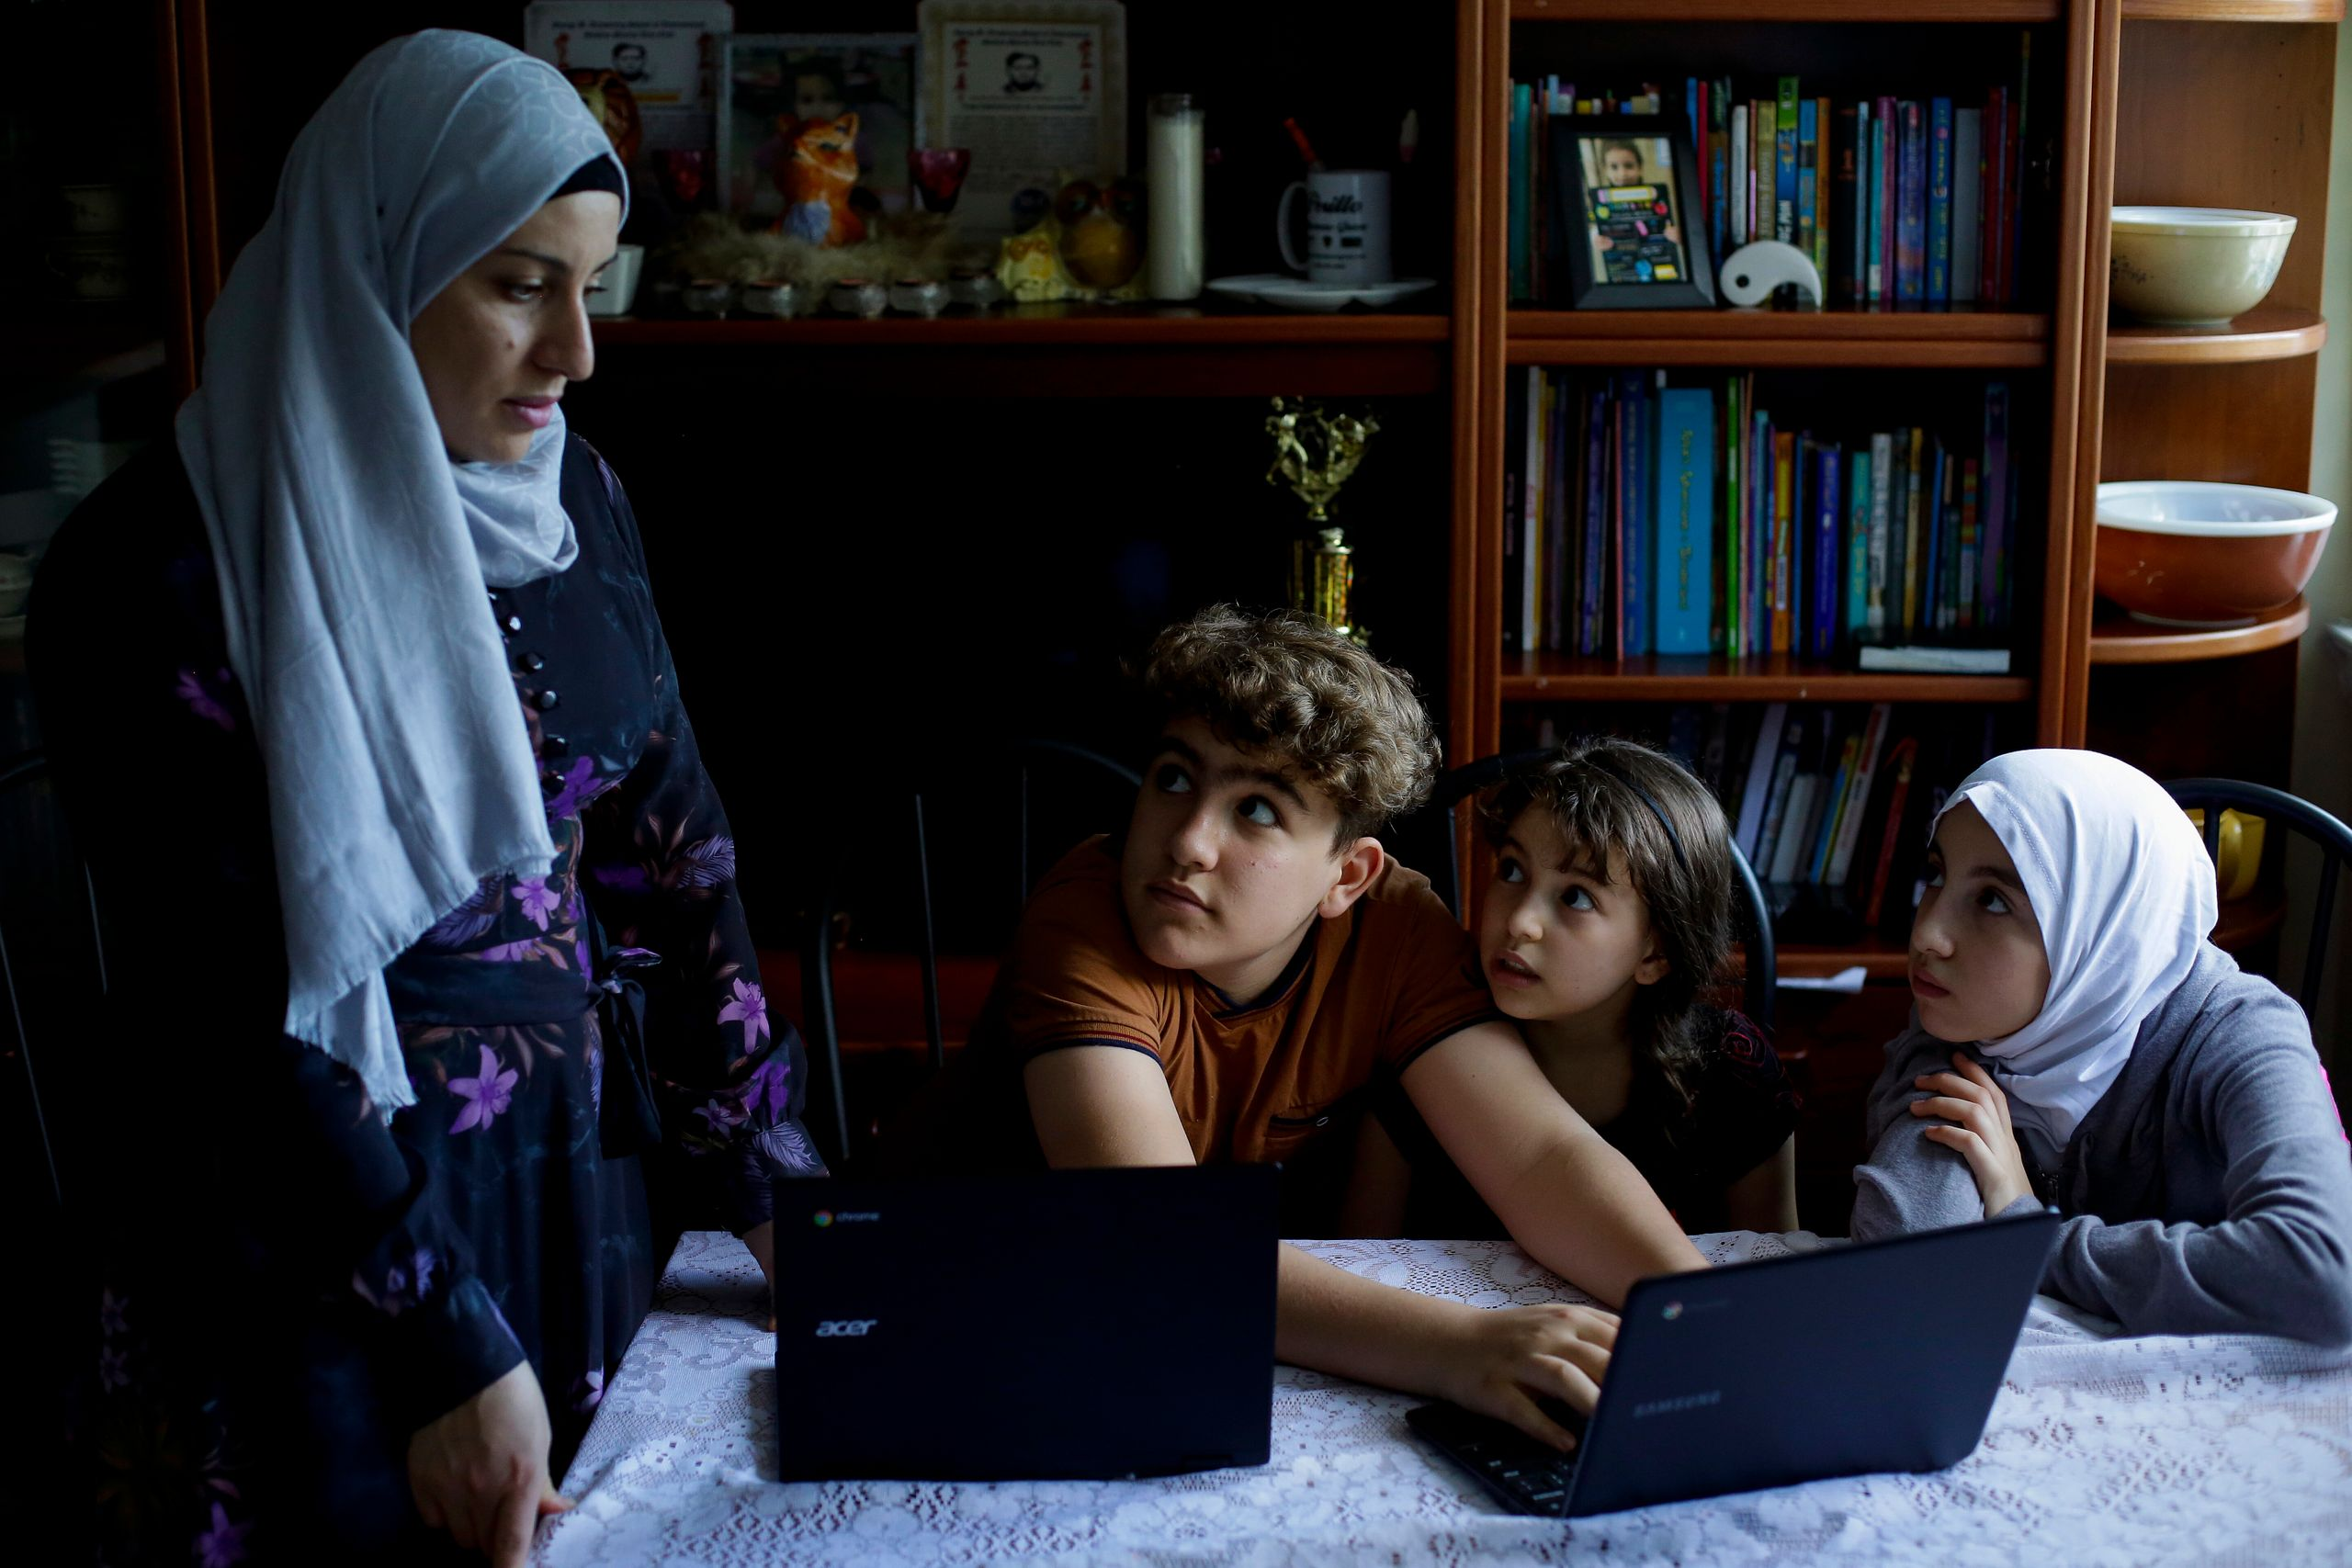 Nawar Almadani, left, watches as her kids Mohamed, Esraaand Baianwork on their computers at their apartment durin